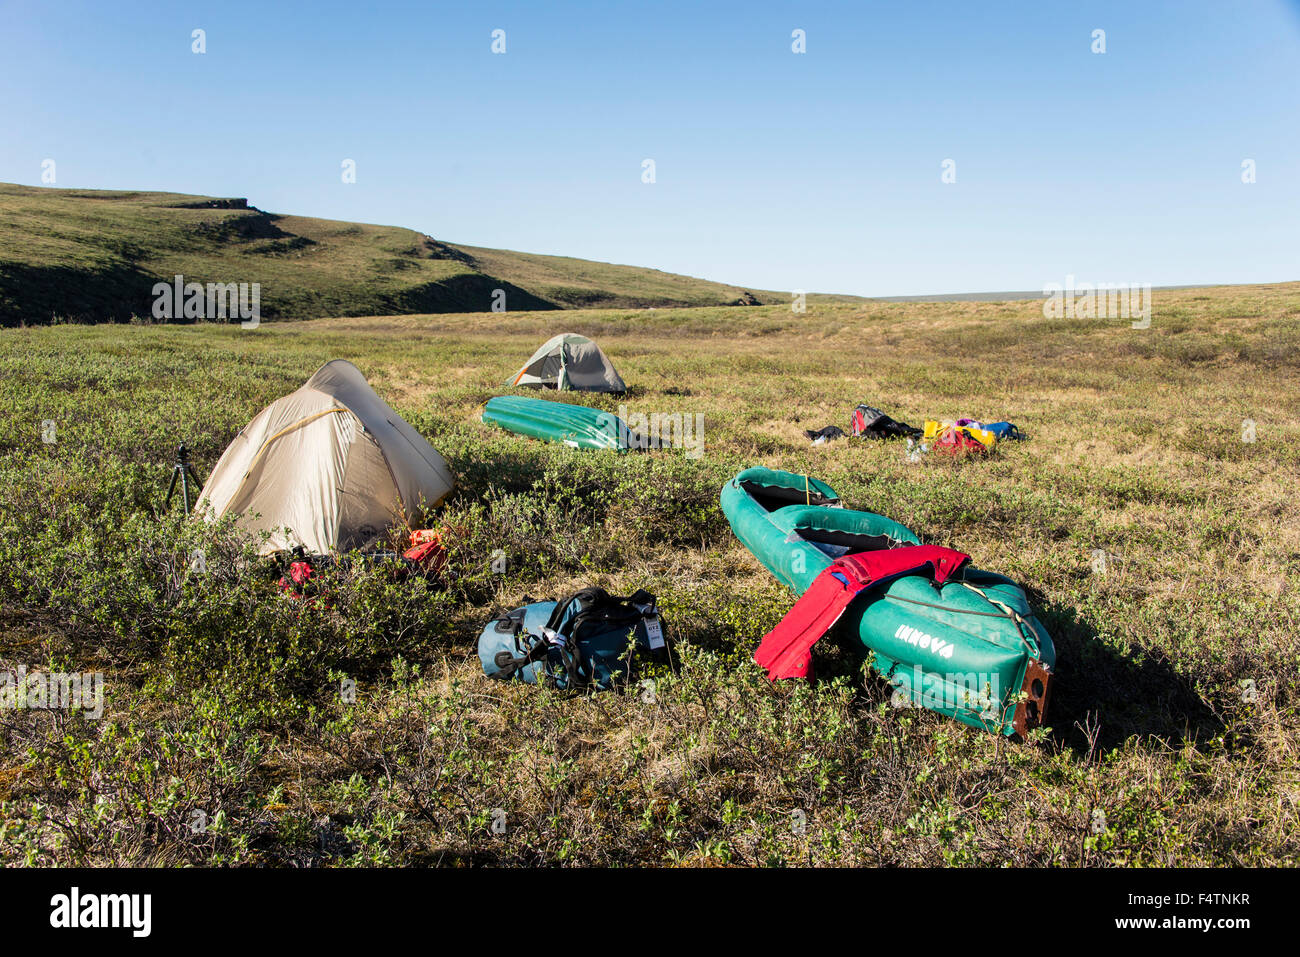 Camping, camping, expédition, réserve nationale de pétrole, pétrole, Alaska, USA, Amérique, Photo Stock